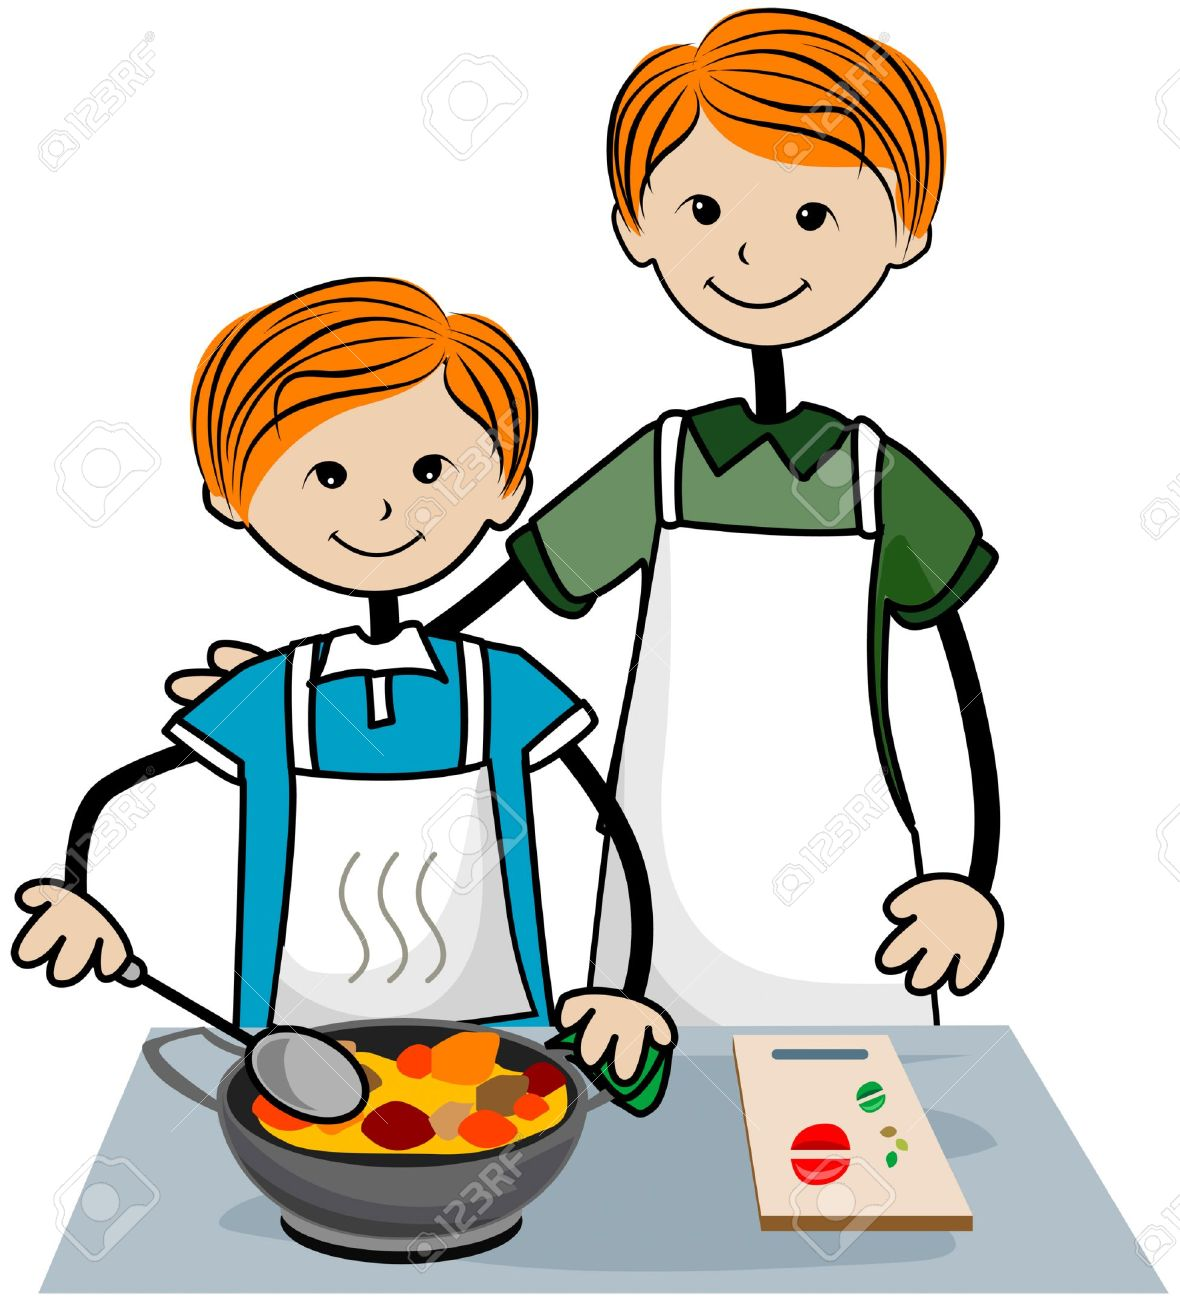 Clip Art Cooking